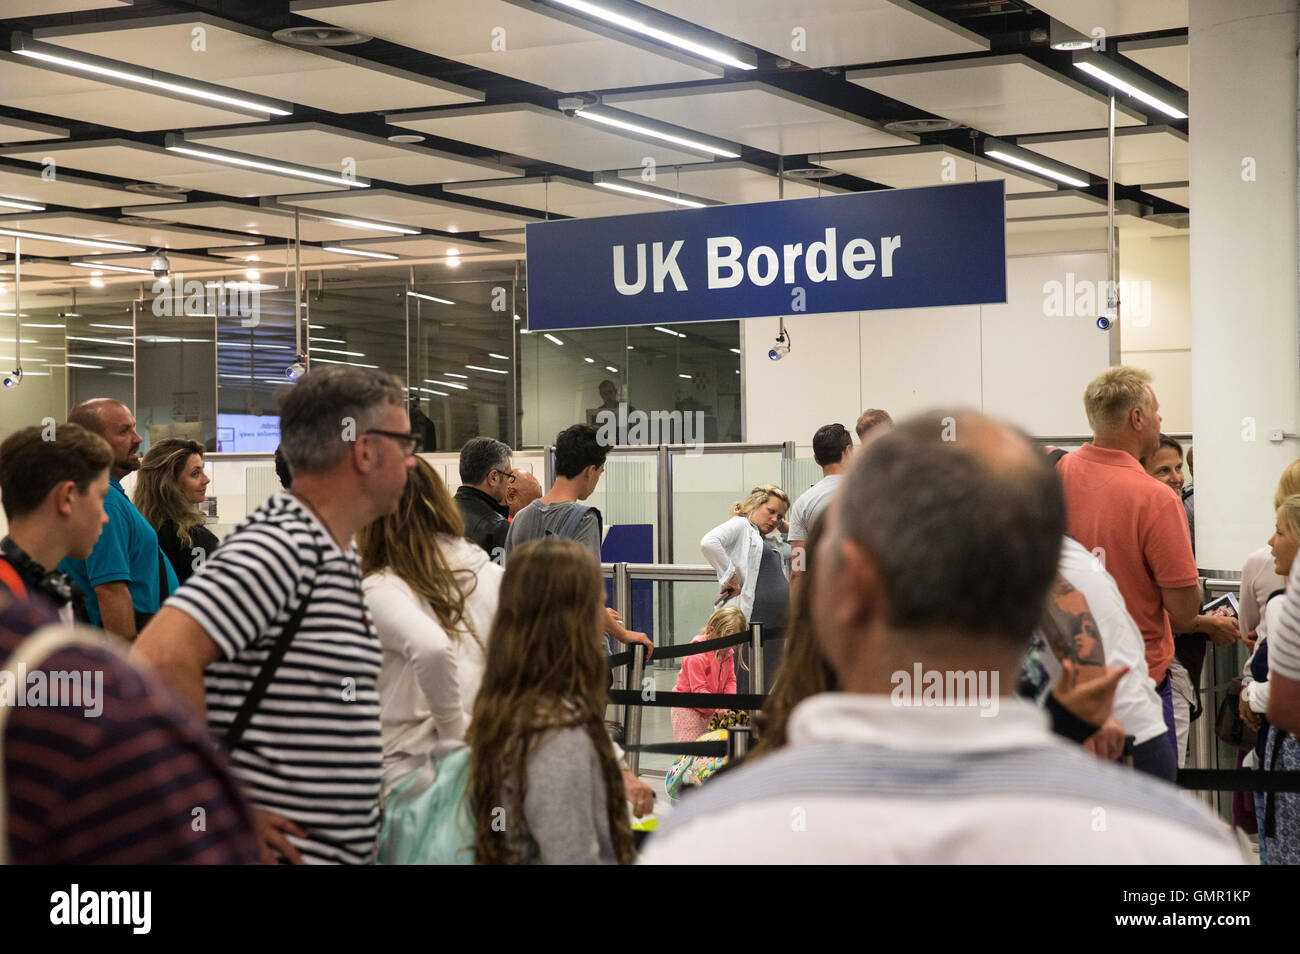 People queuing at the UK border immigration control at Gatwick South Terminal Stock Photo